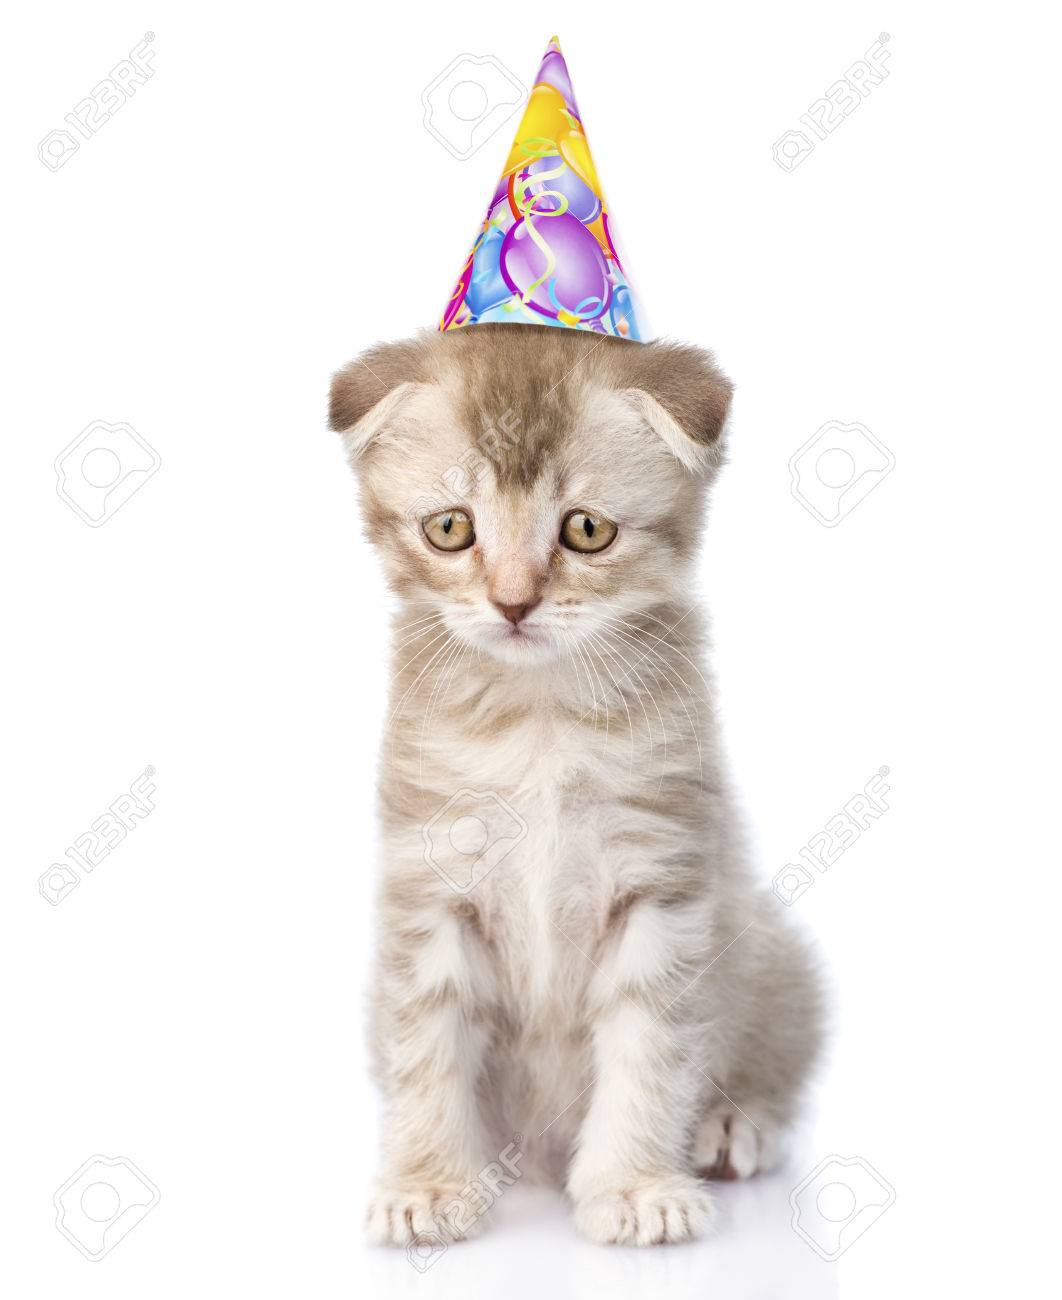 Sad Cat With Birthday Hat Isolated On White Background Stock Photo